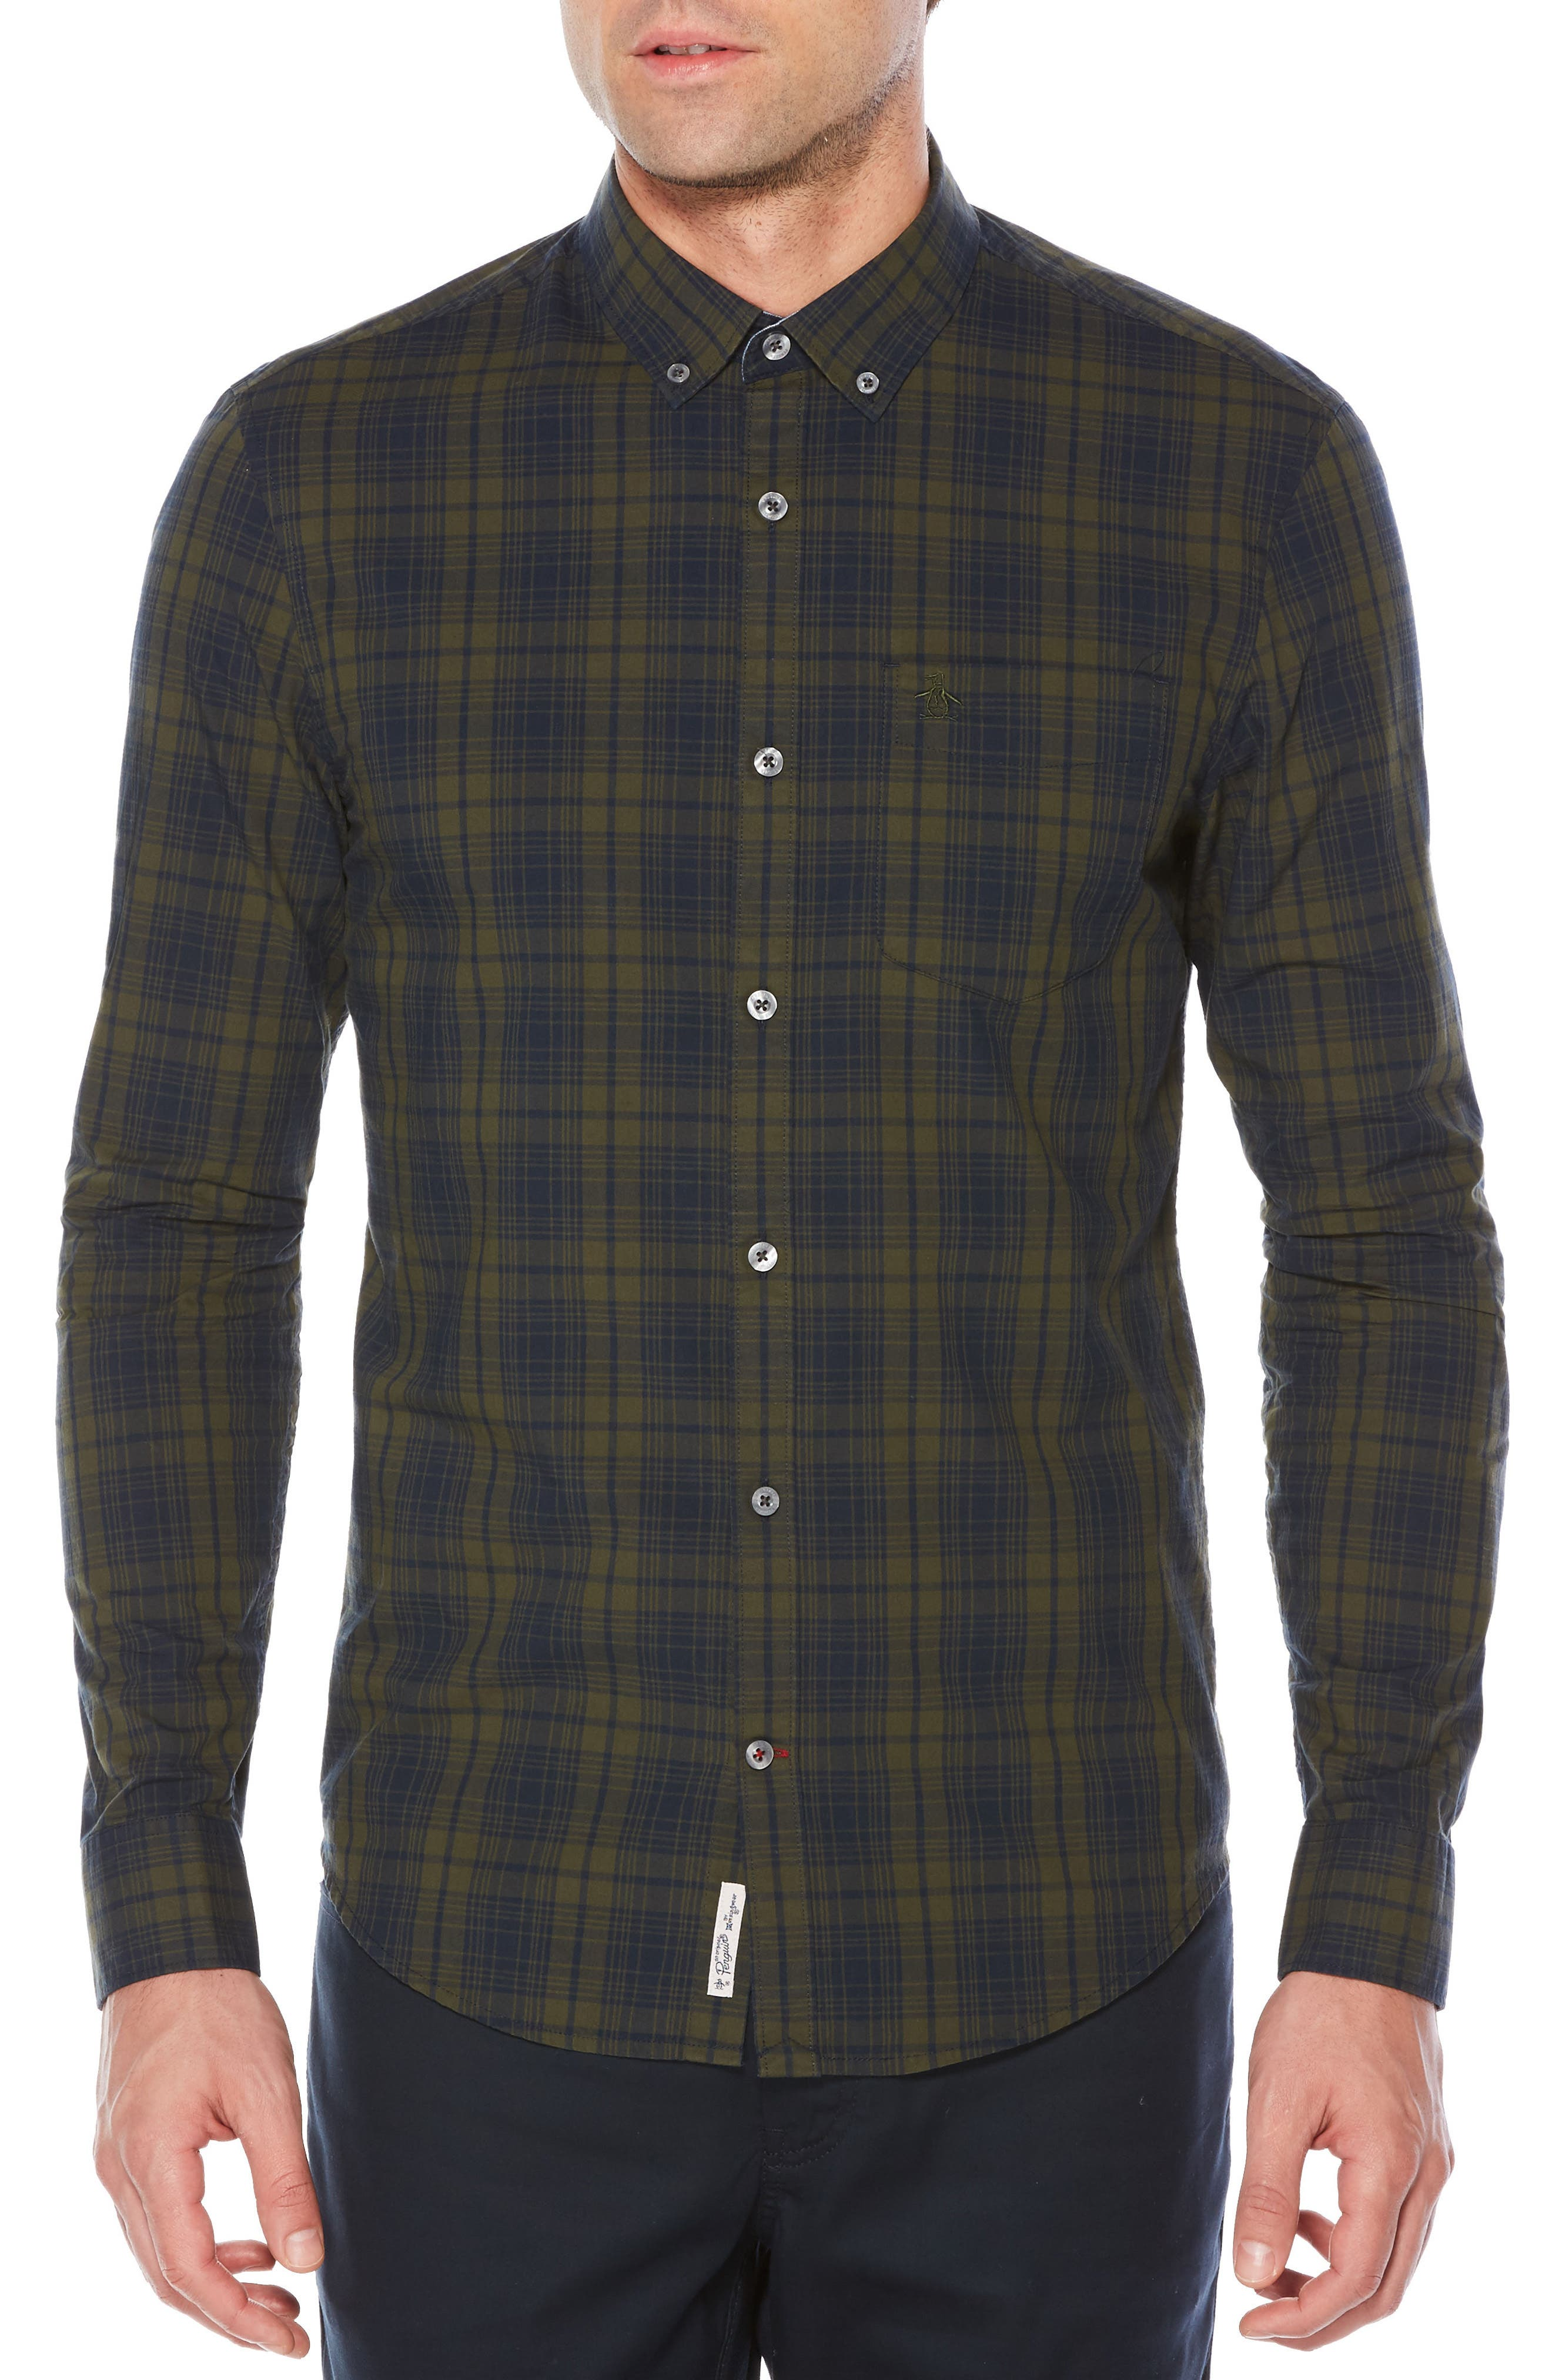 Heritage Slim Fit Plaid Shirt,                             Main thumbnail 1, color,                             Forest Night